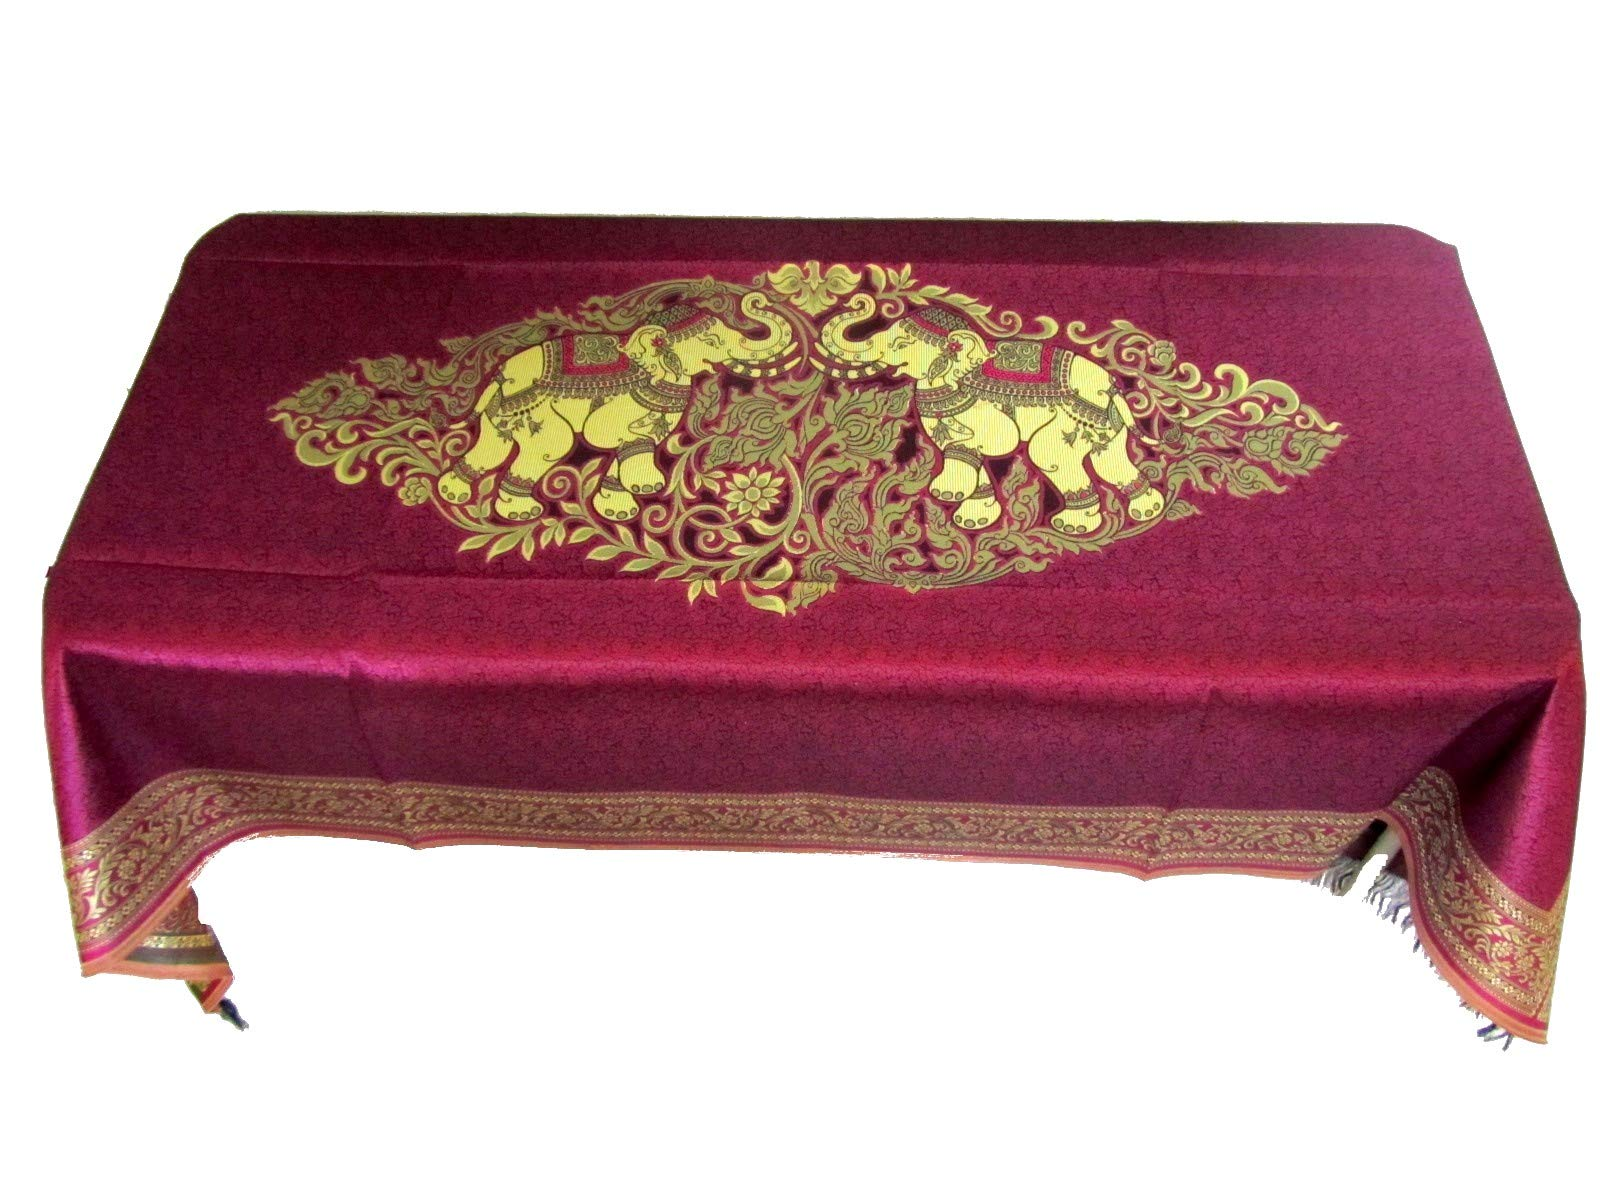 Blue Orchid Elephant Table Cloth Cover Rectangular Embroidered Gold Fabric Elegant Tablecloth Rectangle Table 40'' x 80'' Violet